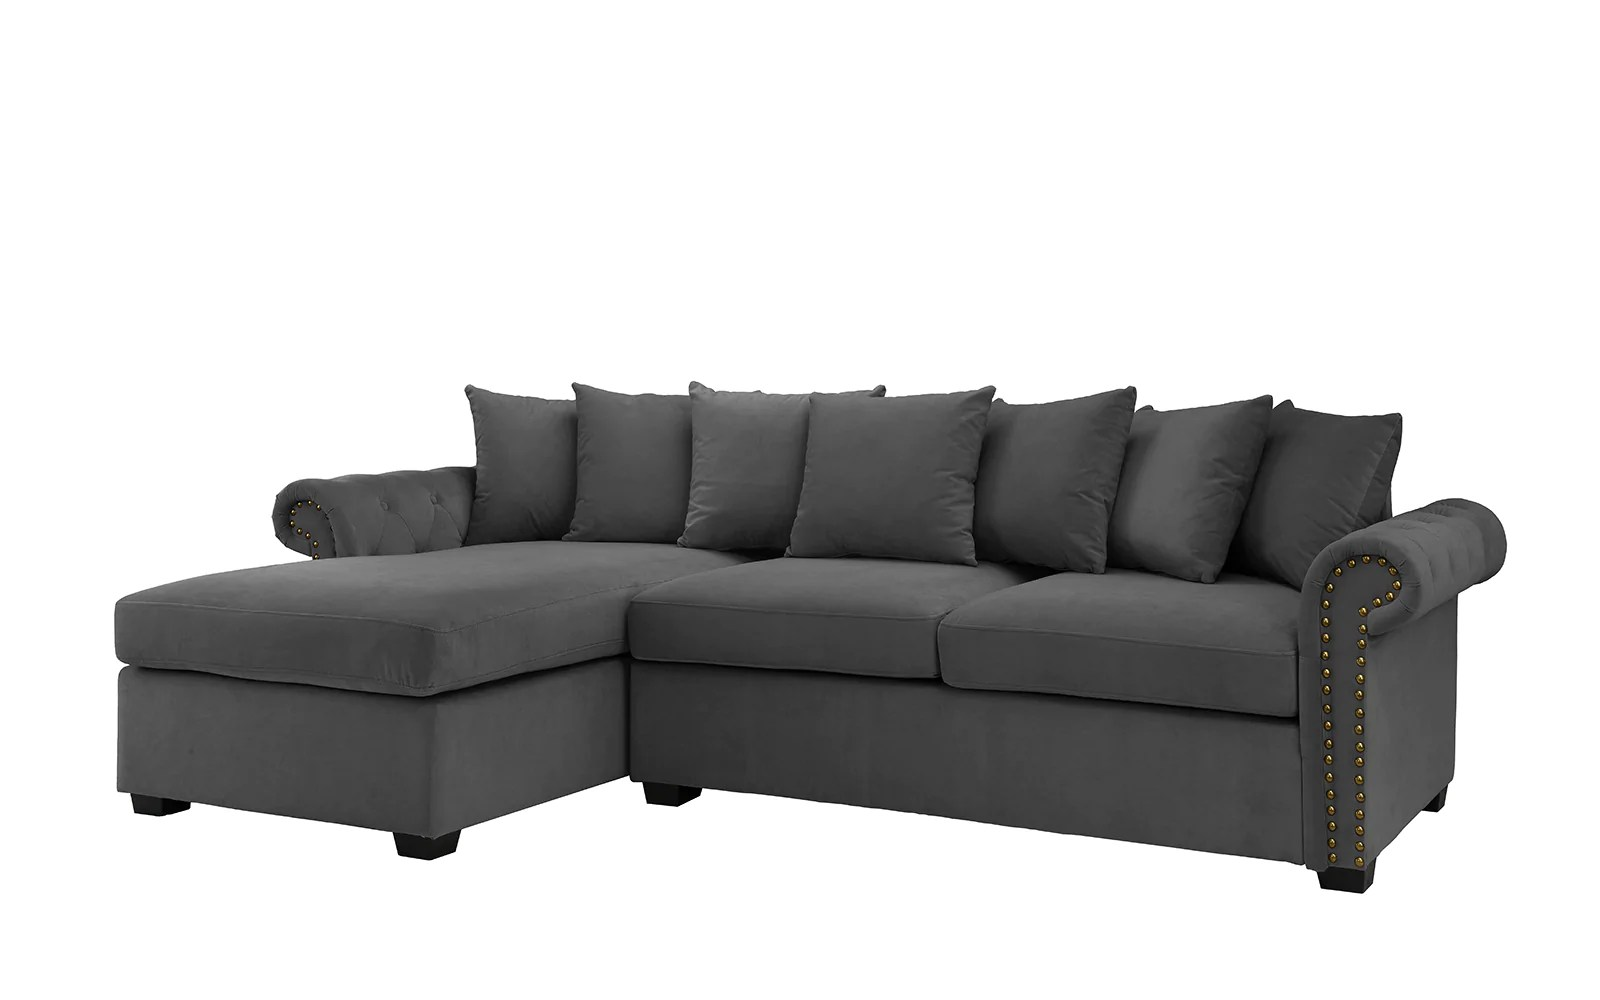 L Shaped Sofa Victorian Melina Classic Victorian Inspired Velvet Sectional Sofa